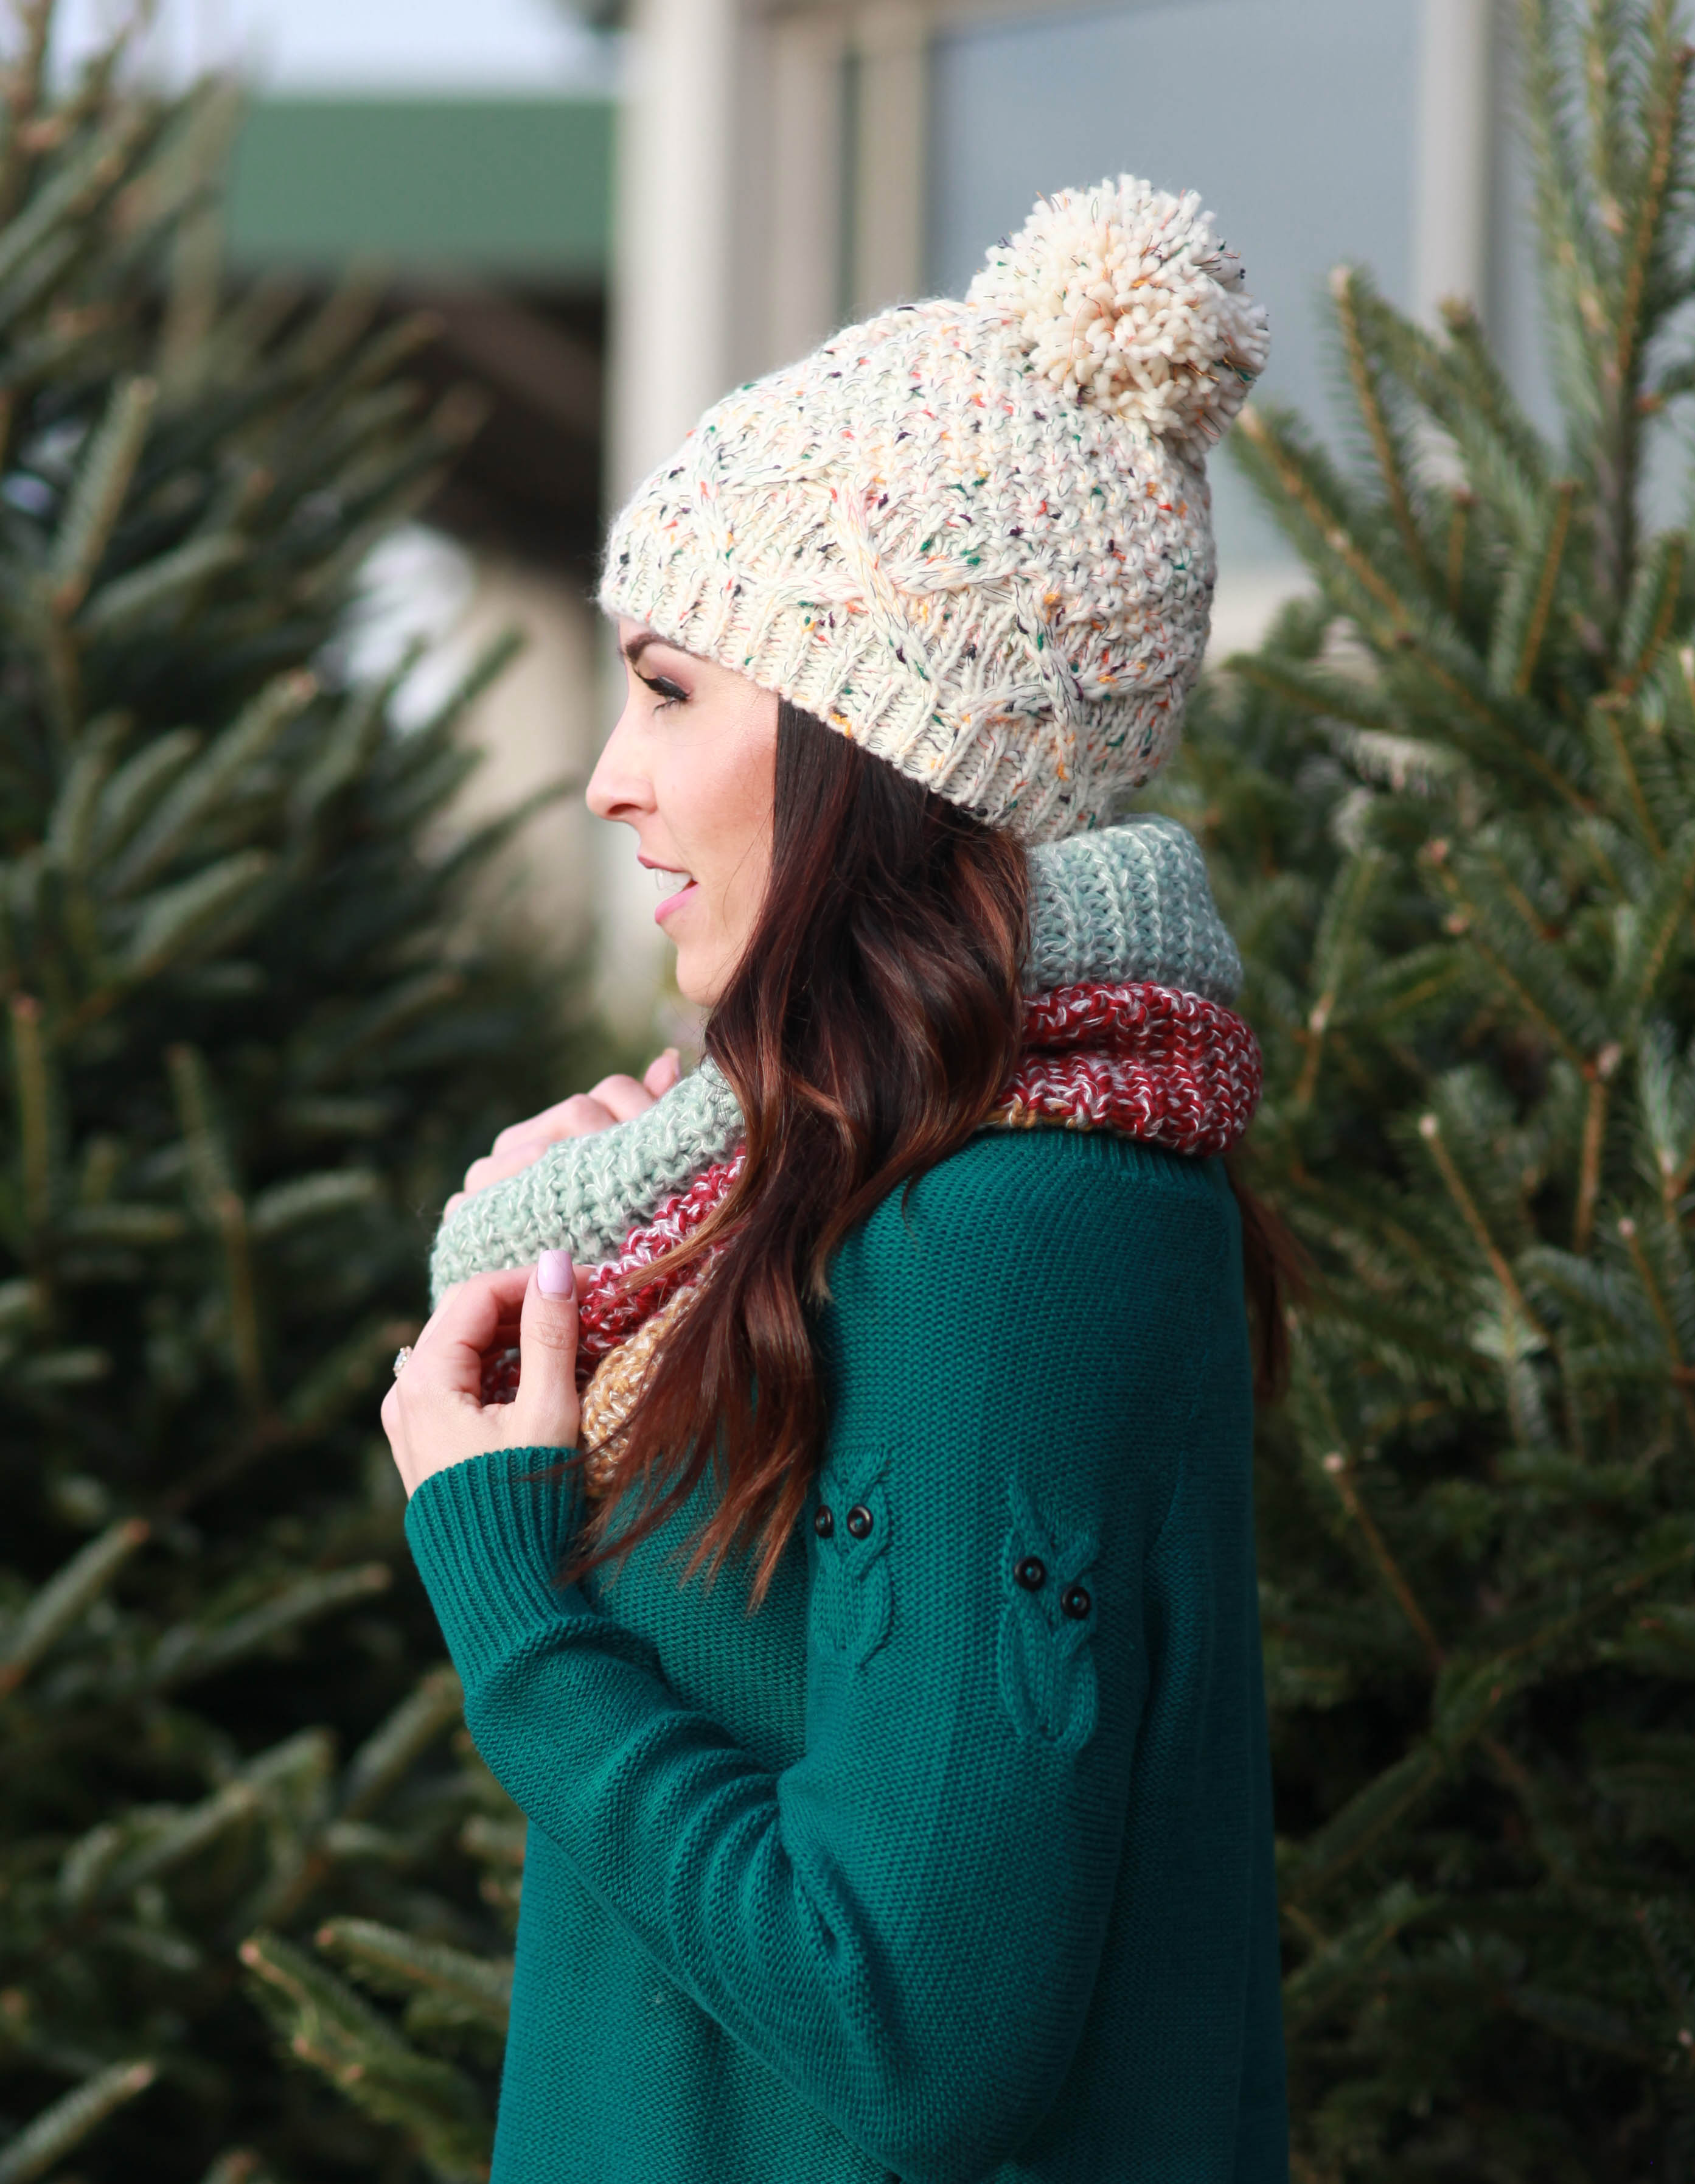 PaleOMG Winter Accessories To Keep You Extra Warm & Cuddly